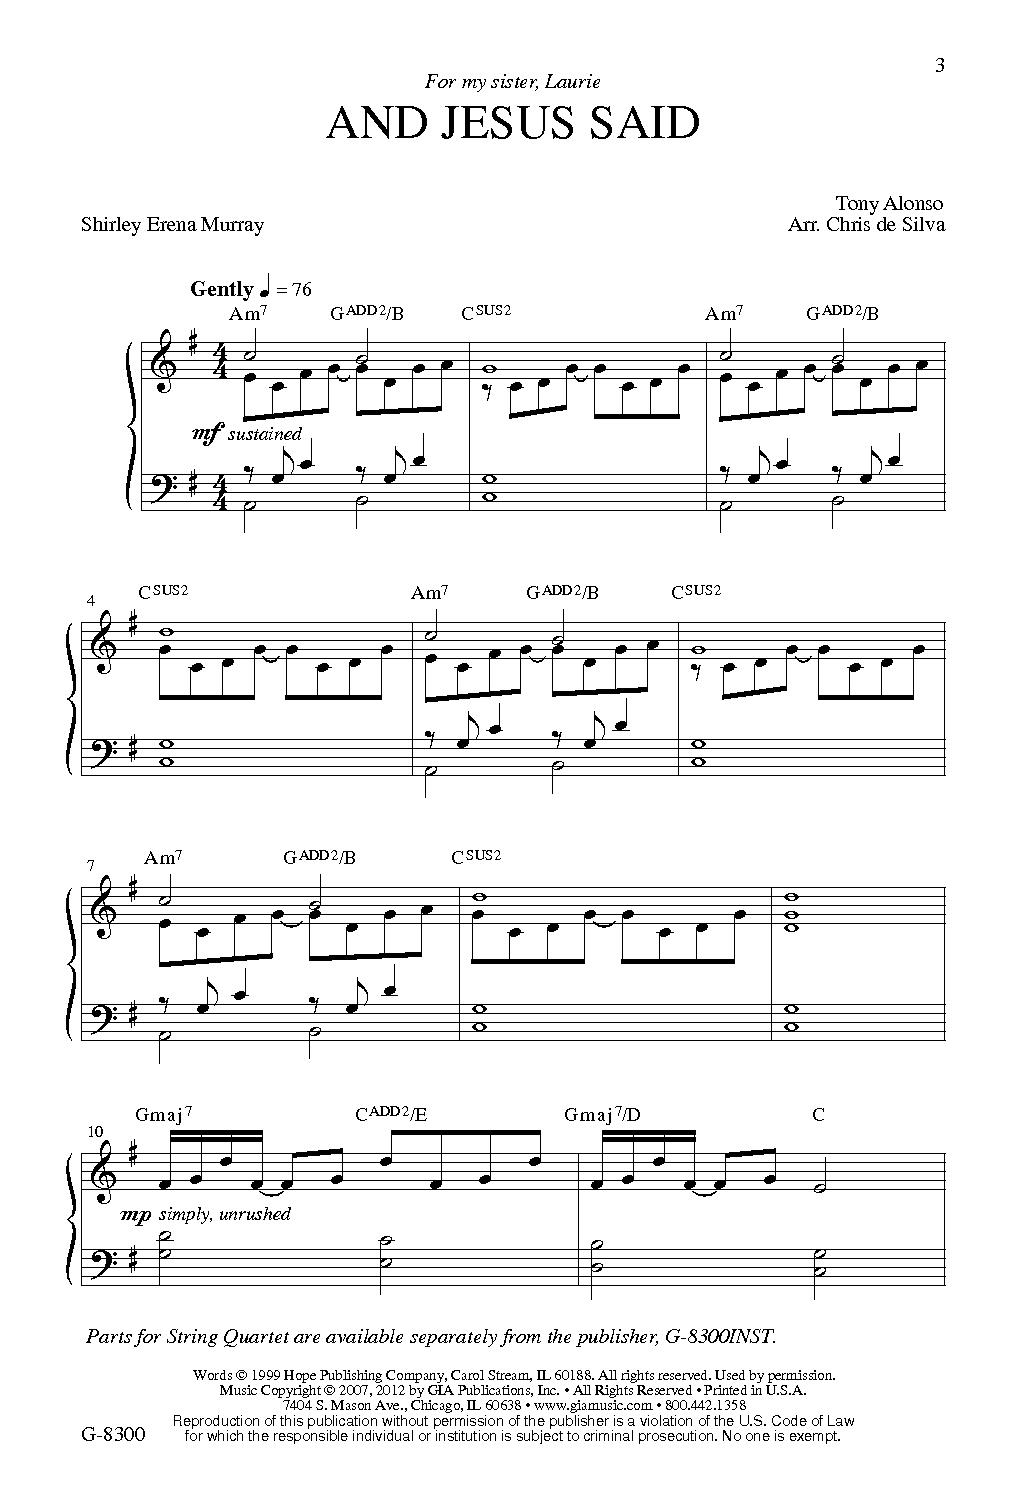 Psalm 27 The Lord Is My Light W Chords Cloud Hymnal